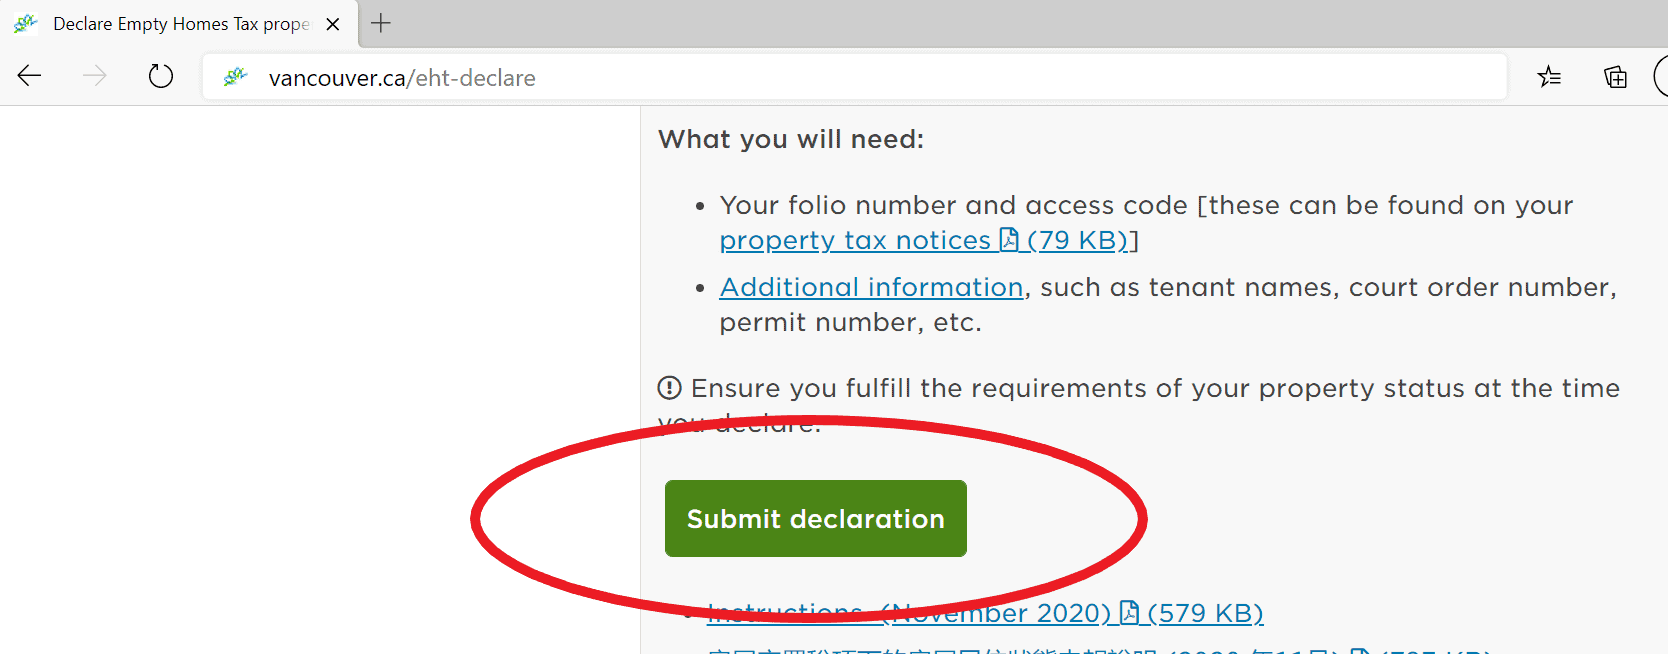 Step 2 - Click submit declaration